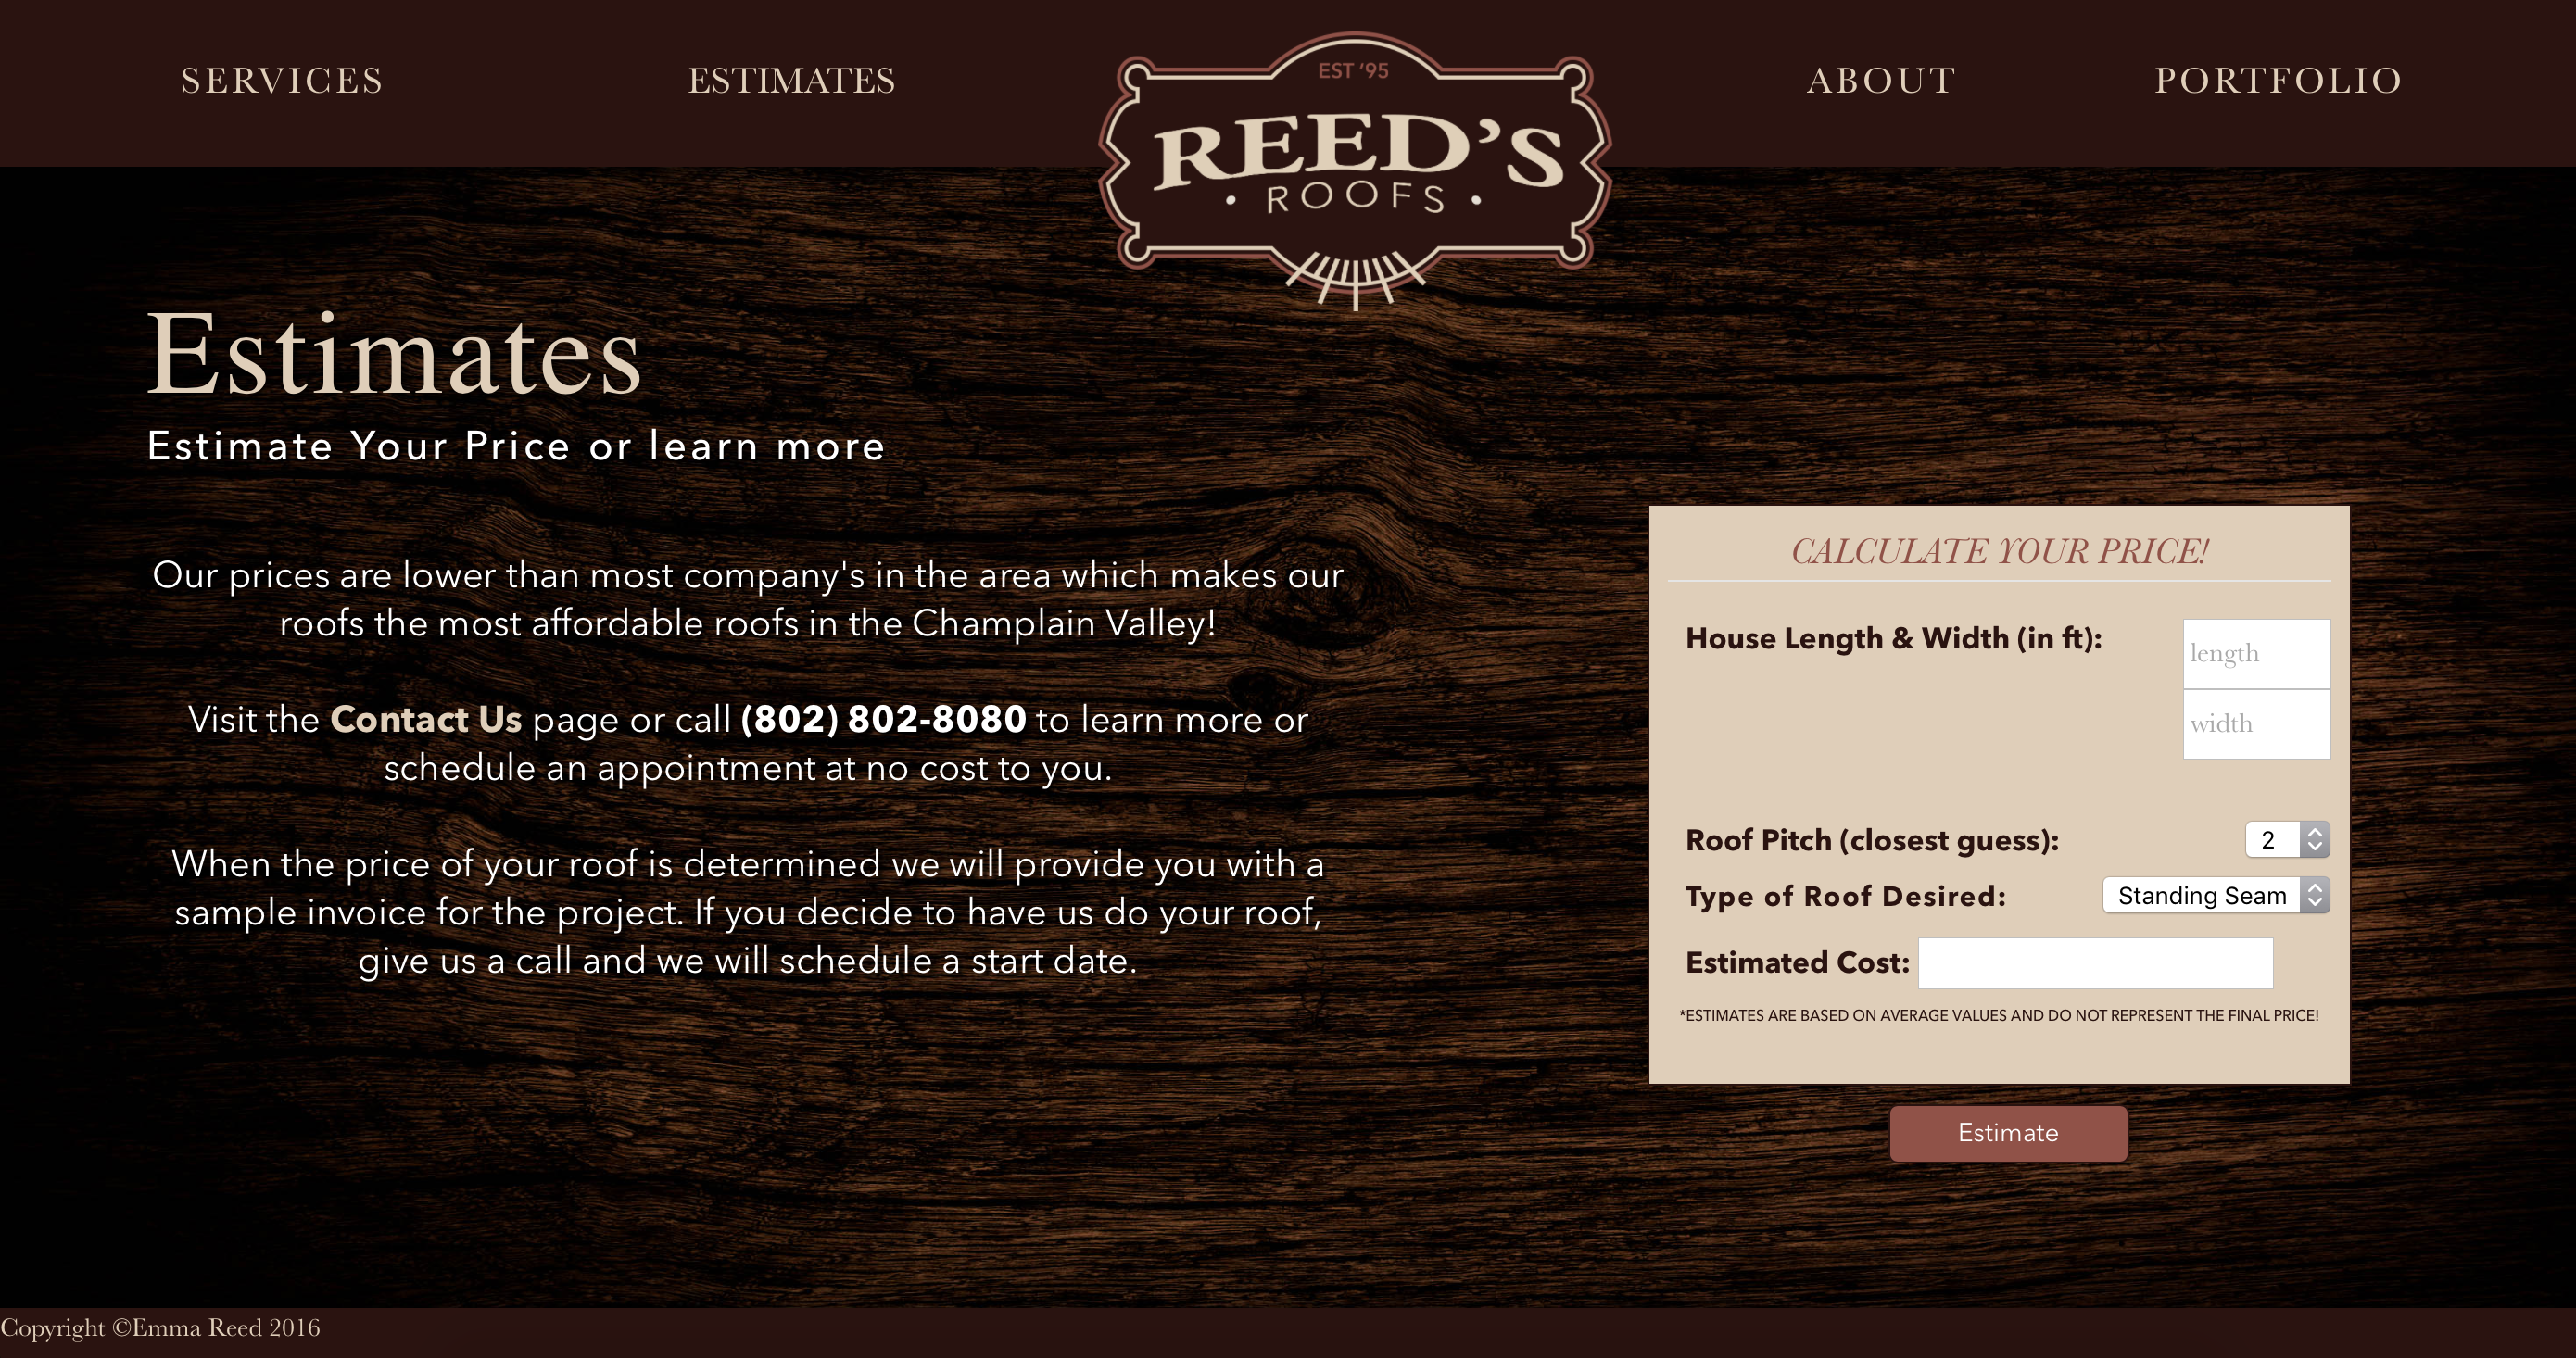 Reed's Roofs Estimates